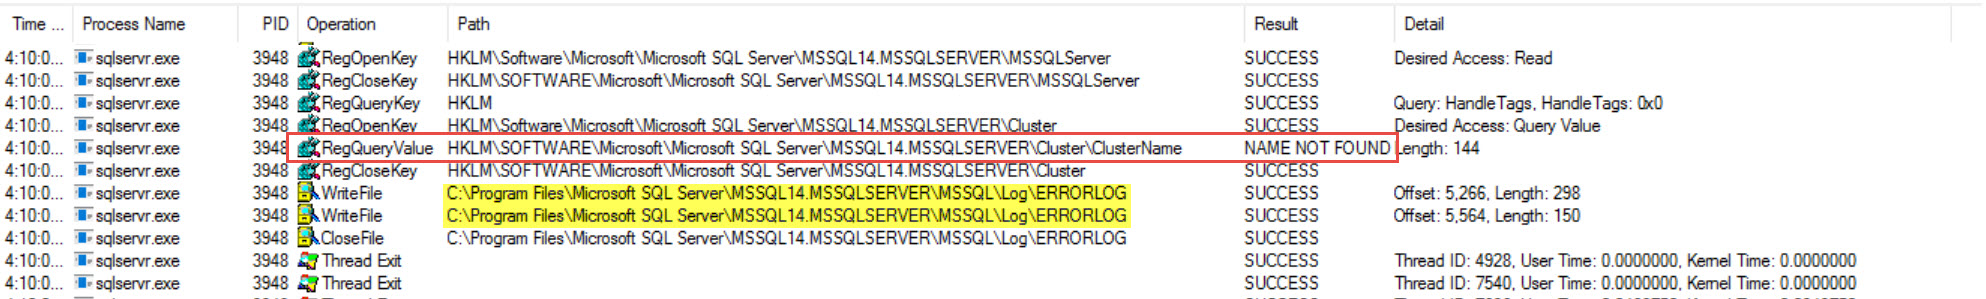 SQL SERVER - Unable to Start SQL Service Error: 17172 - SNIInitialize() Failed with Error 0x2 sni-err02-03